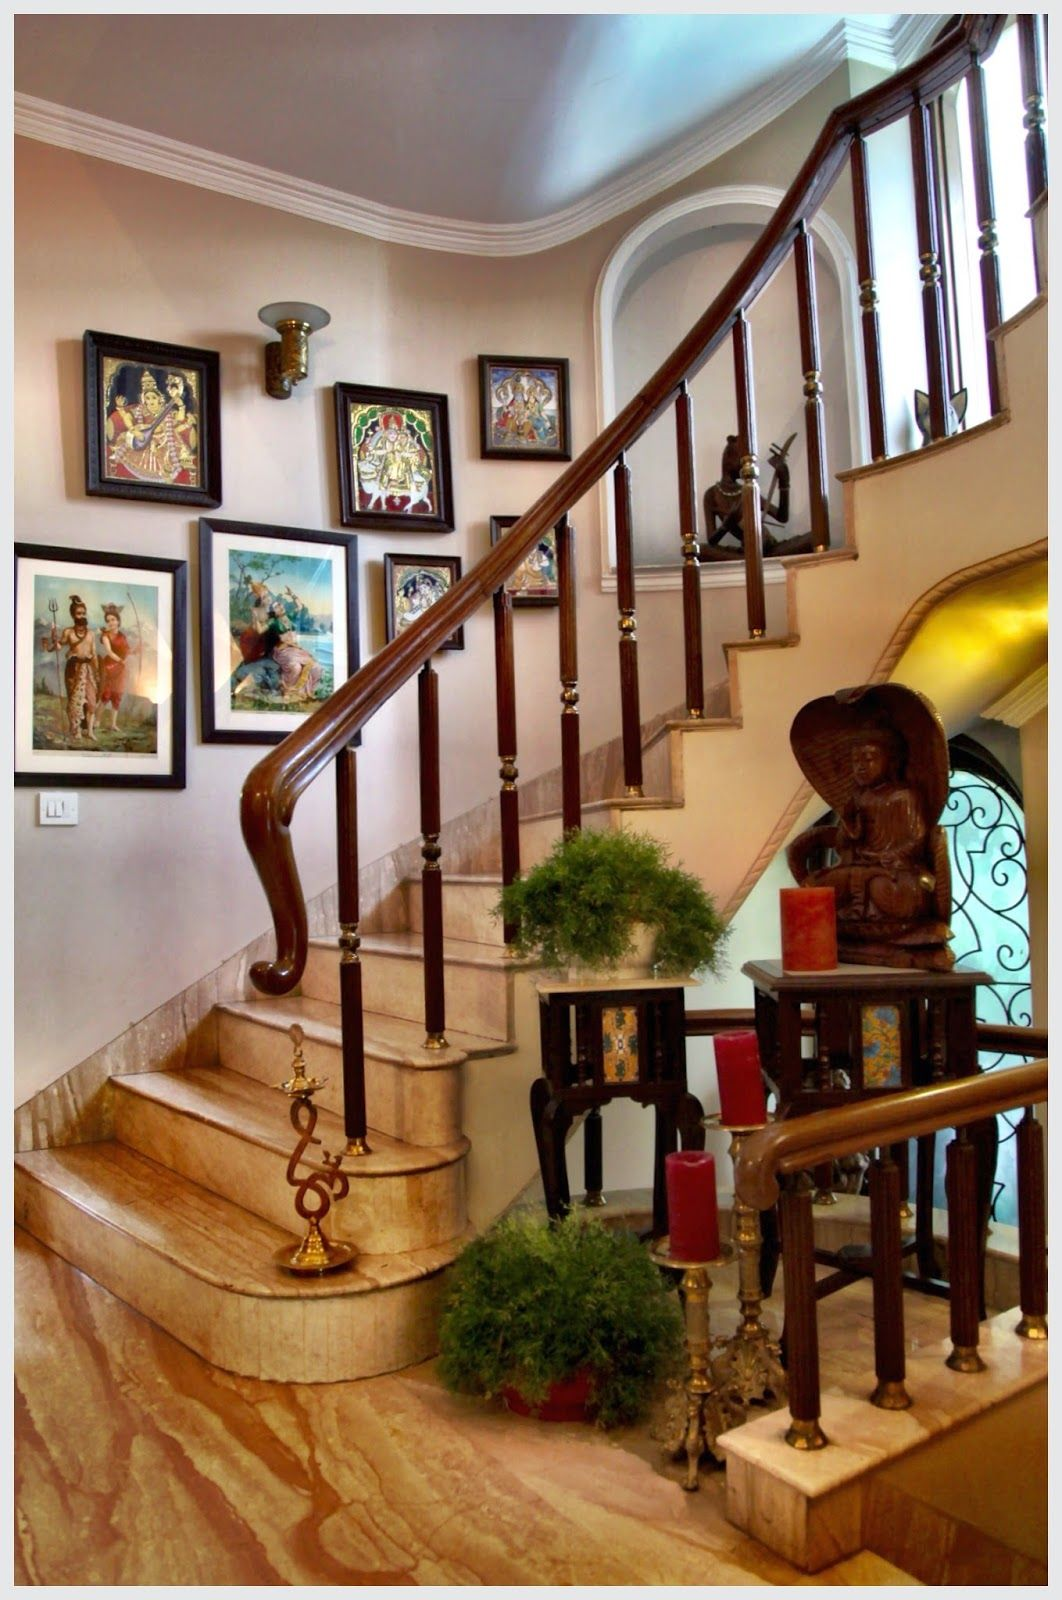 Indian Home Decoration Lining The Walls Of The Stairway Are Ravi Varma